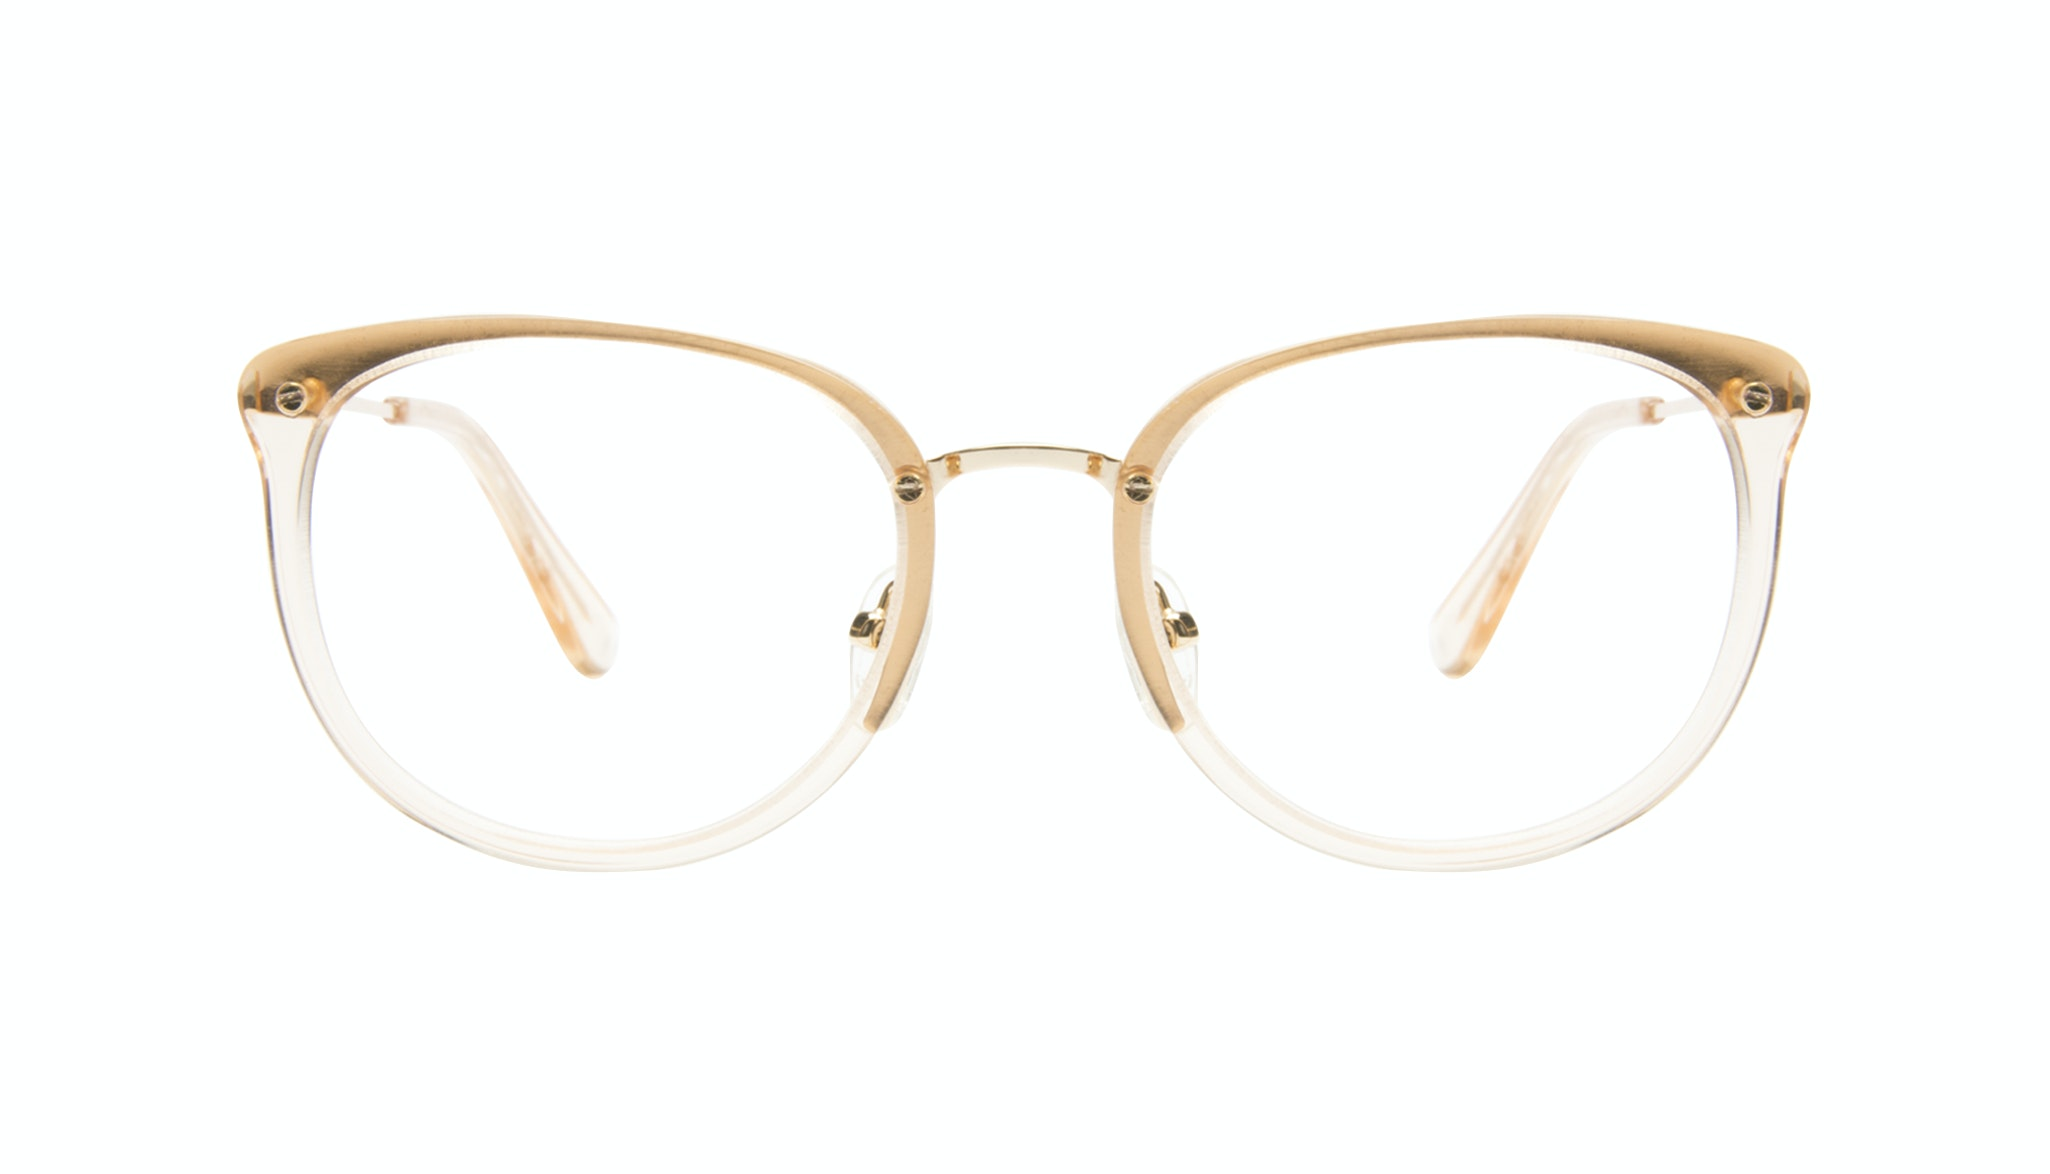 Affordable Fashion Glasses Square Round Eyeglasses Women Amaze Blond Metal Front